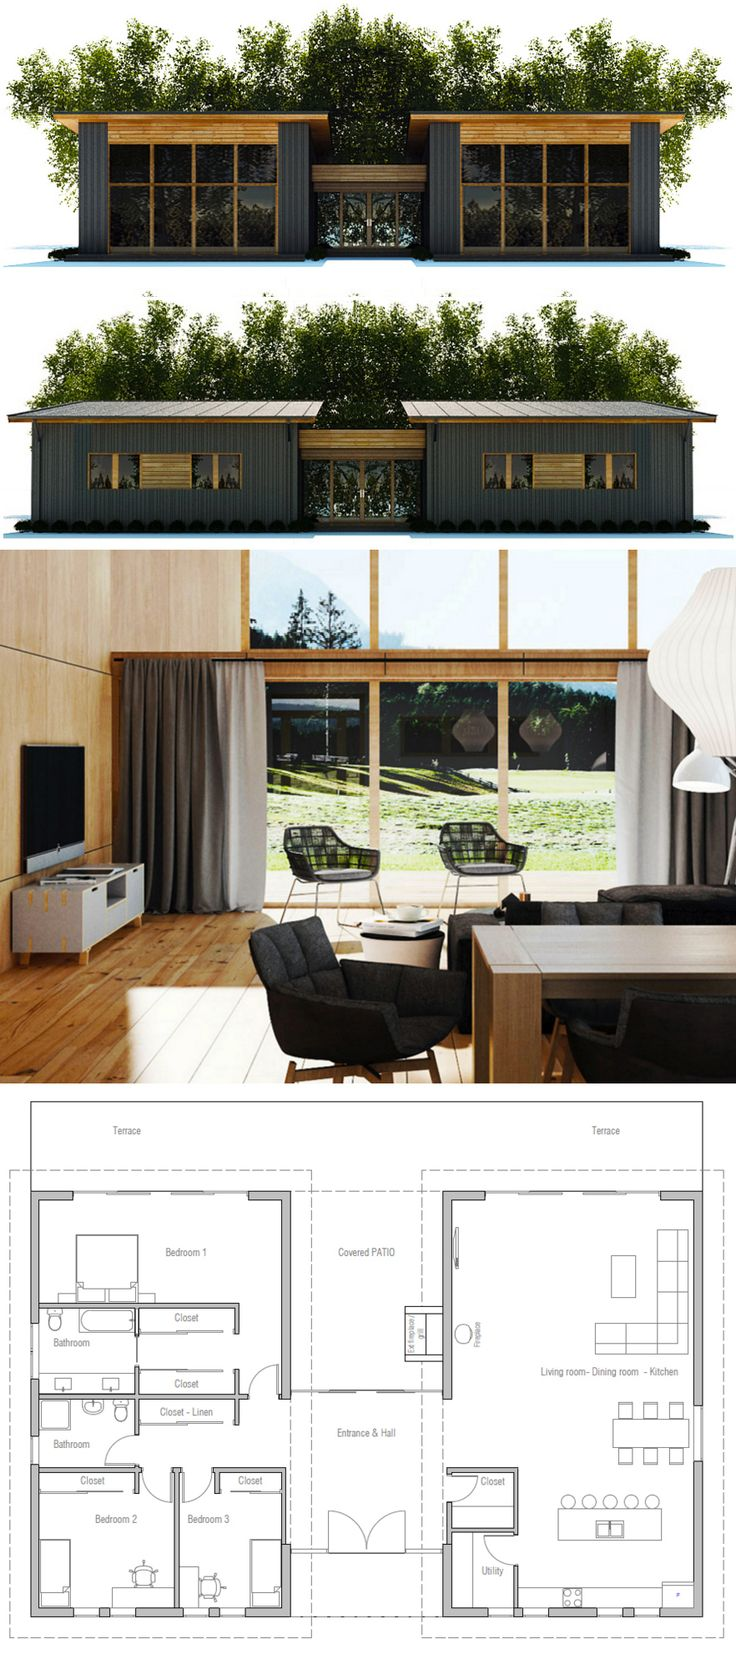 Amazing 17 Best Ideas About Small Houses On Pinterest Small Homes Tiny Largest Home Design Picture Inspirations Pitcheantrous